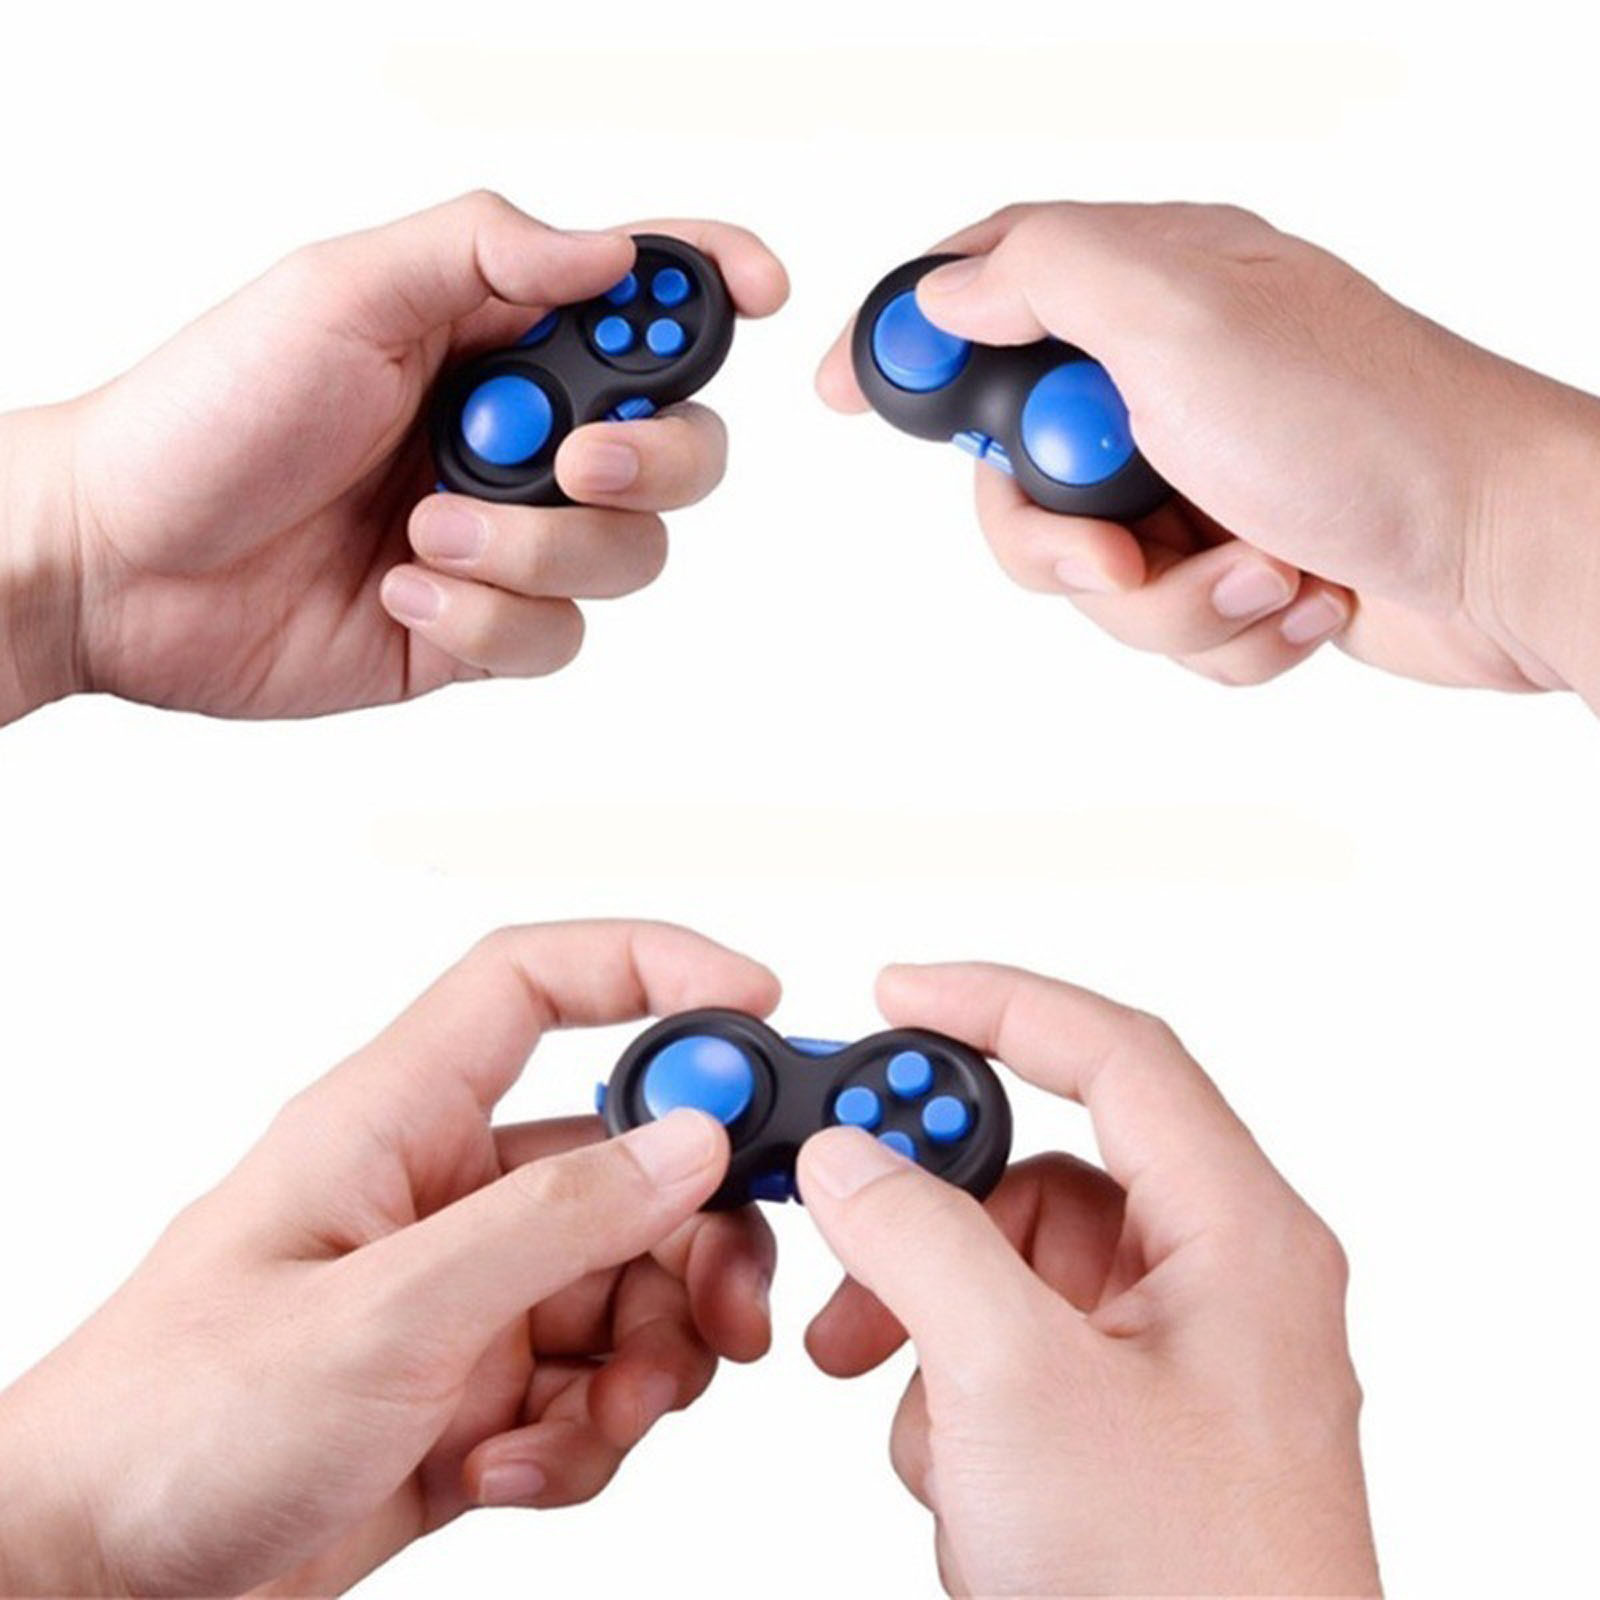 Gamepad Figet Toys Juguetes Decompression Stress Anxiety Children Adult for Is Used And img5